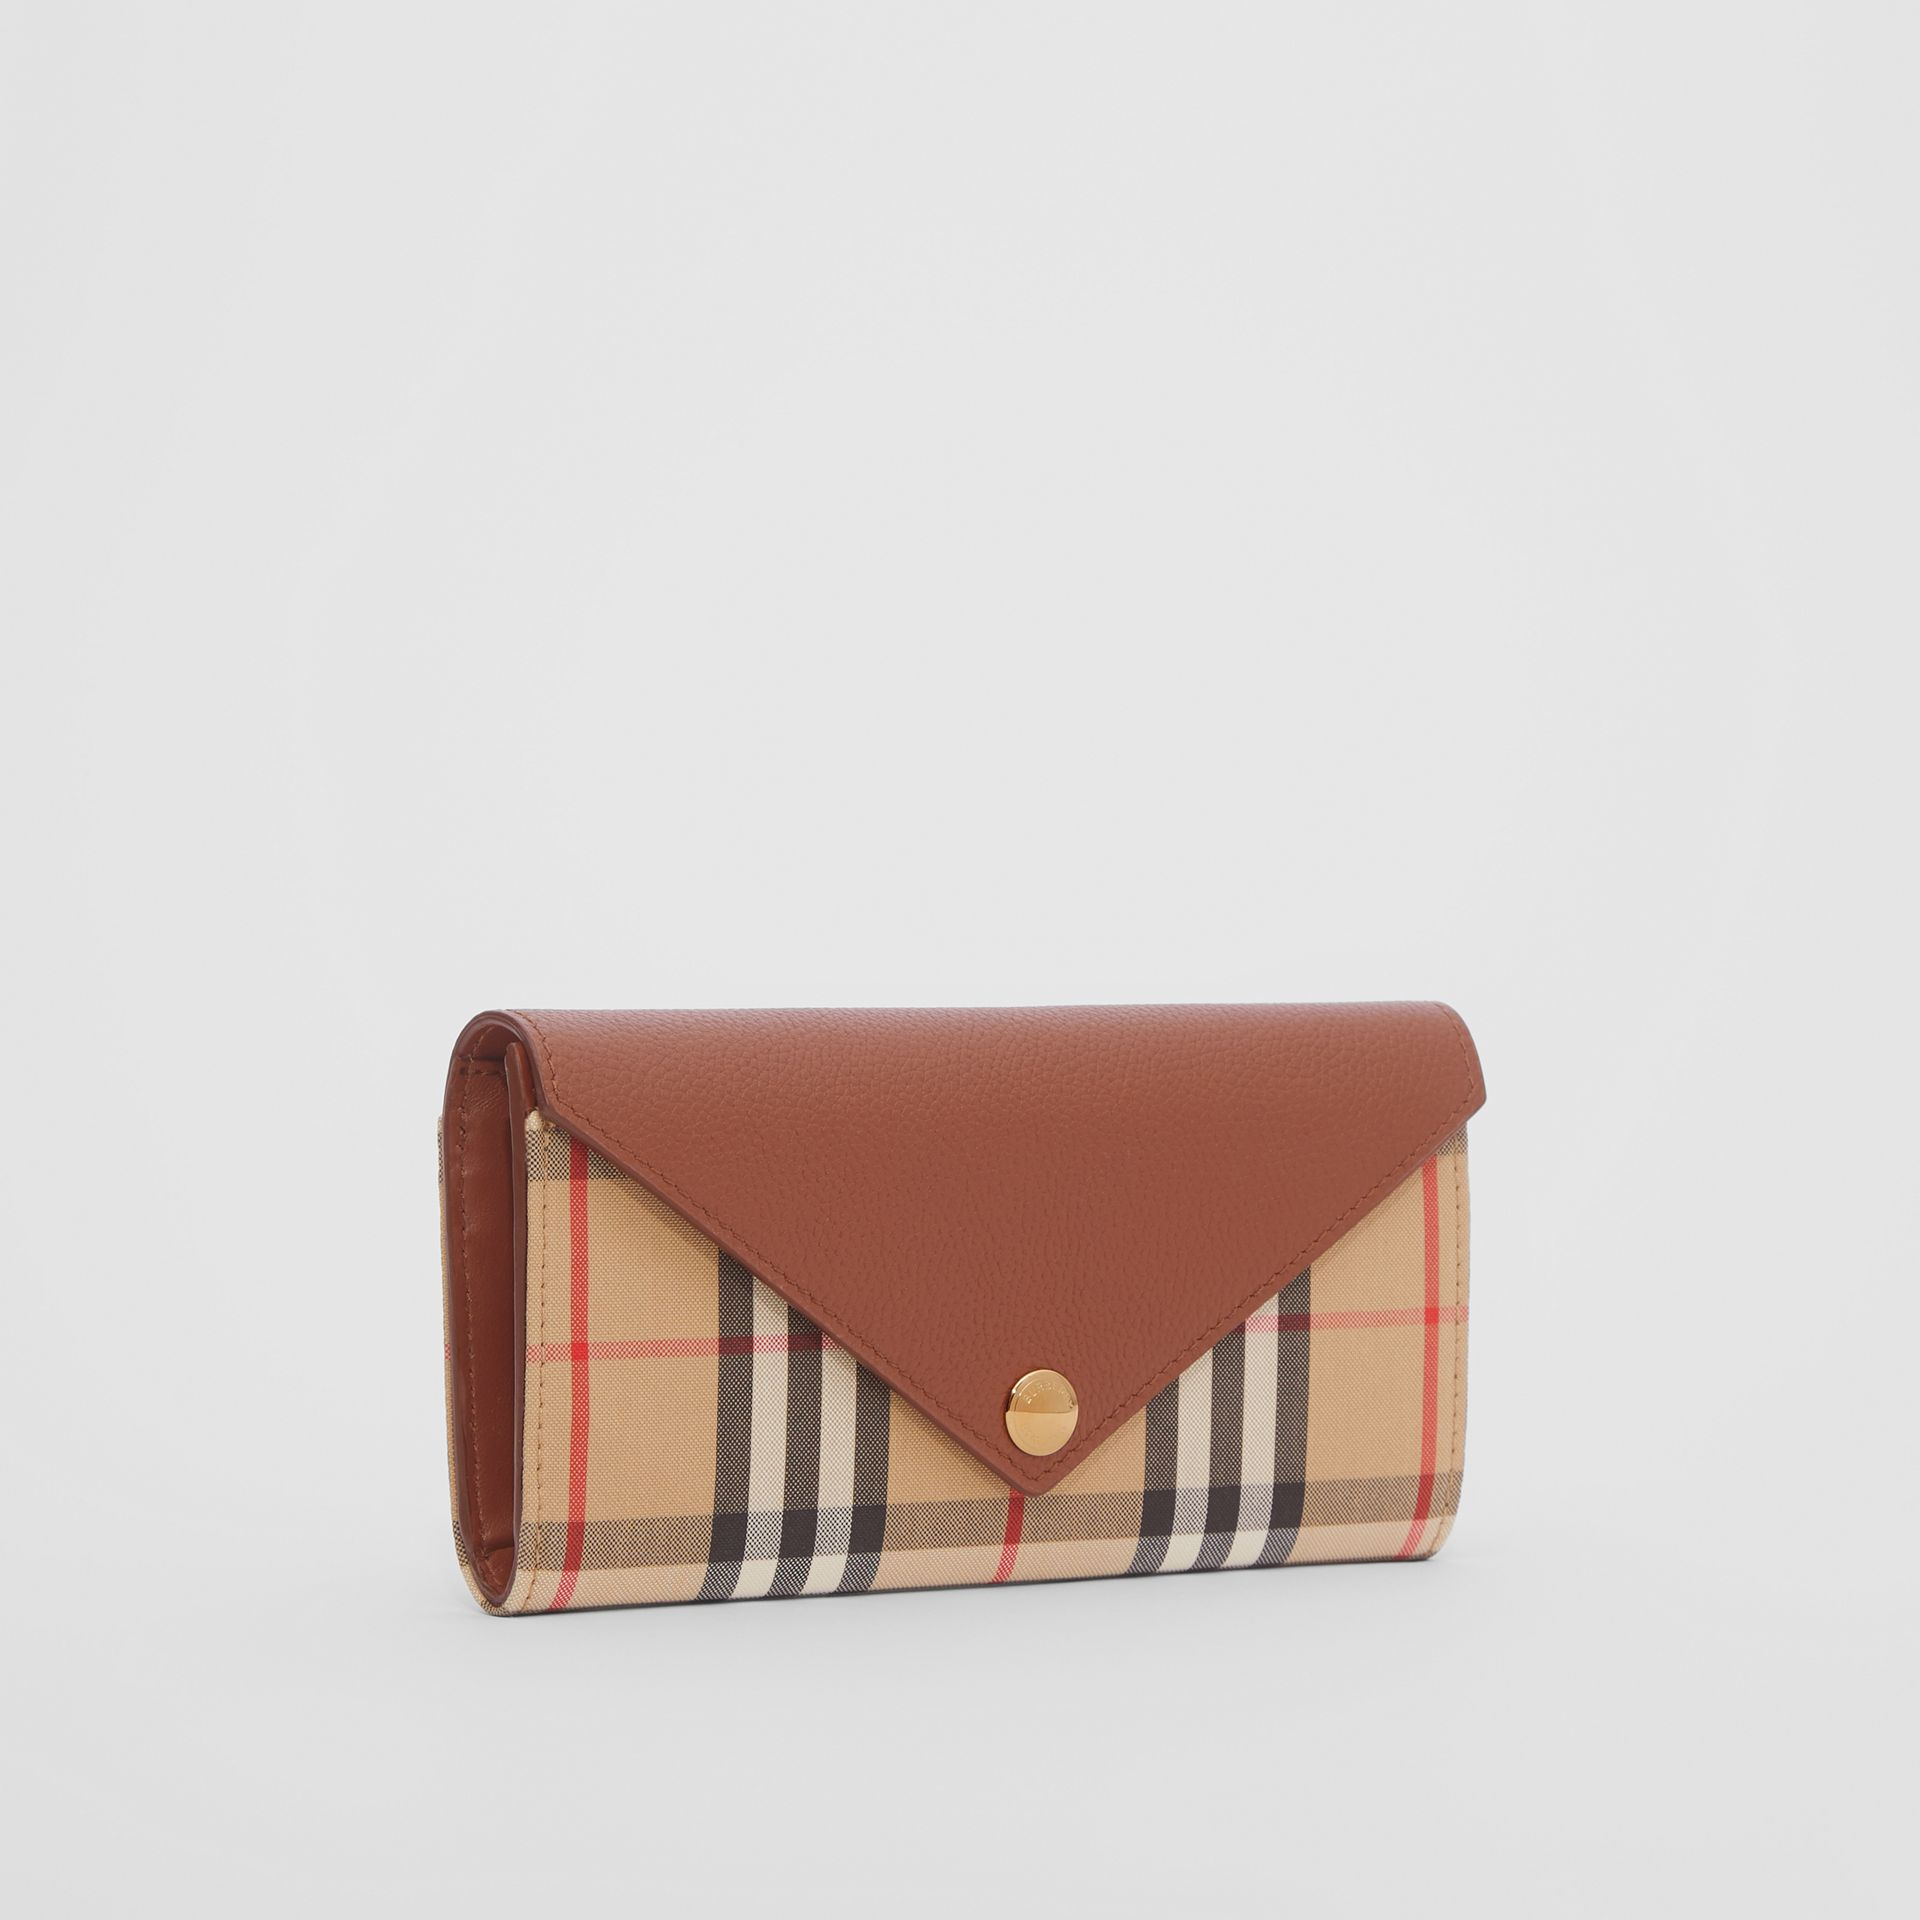 Vintage Check and Leather Continental Wallet in Tan - Women | Burberry United Kingdom - gallery image 3